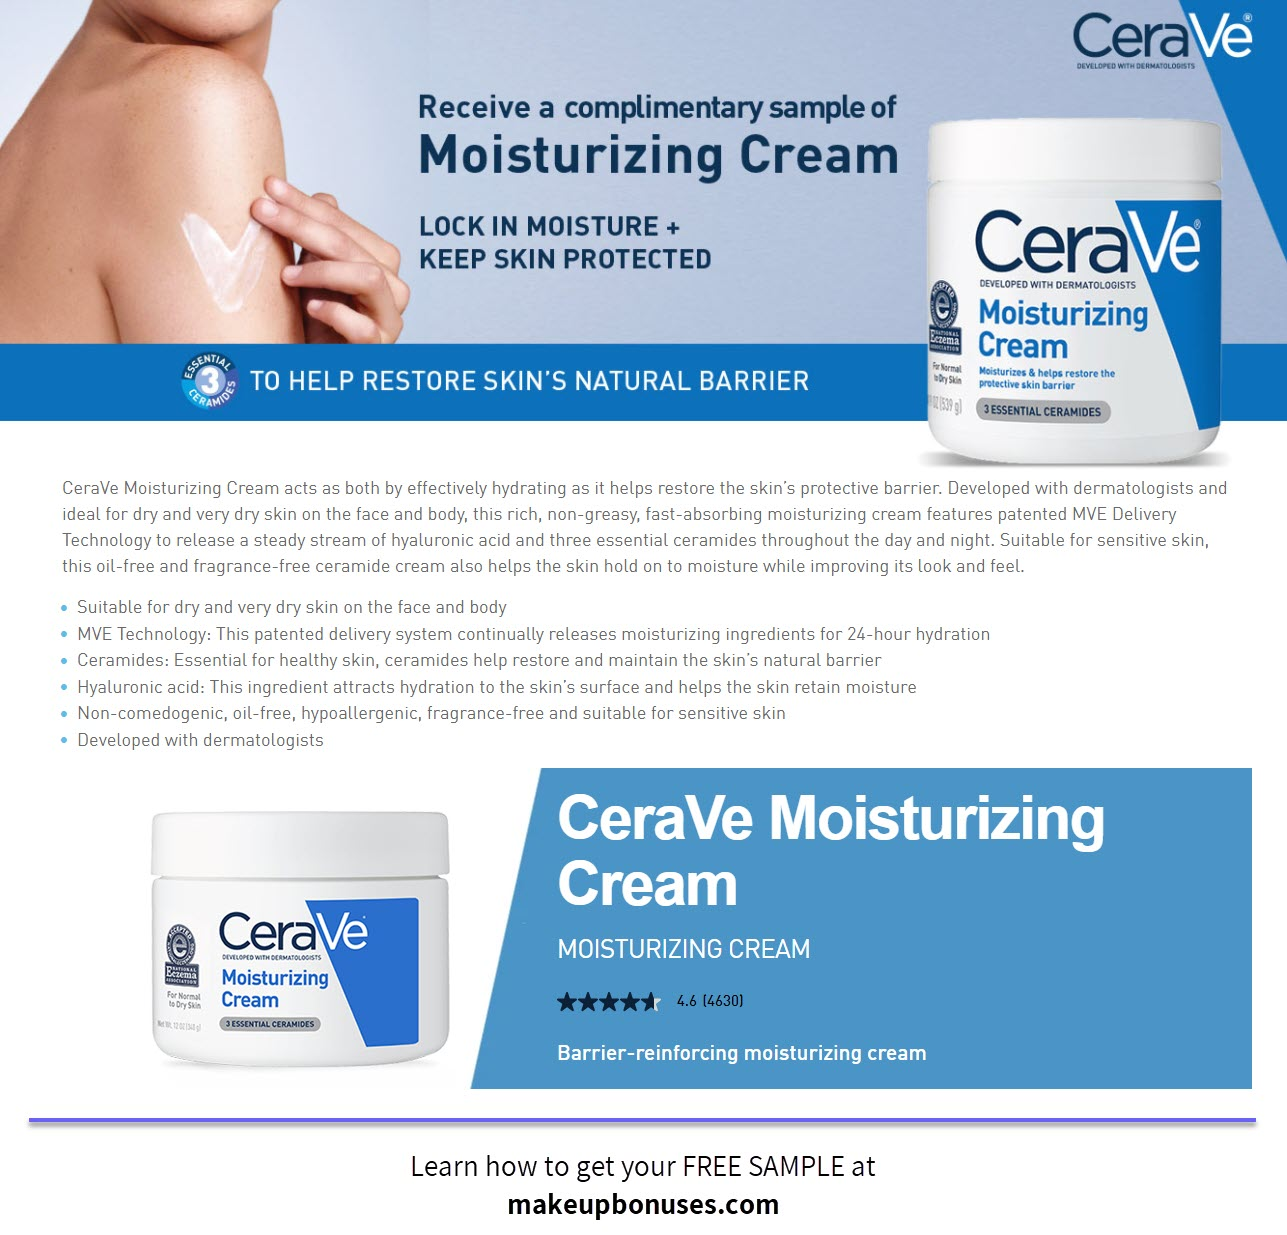 CeraVe Free Sample - MakeupBonuses.com